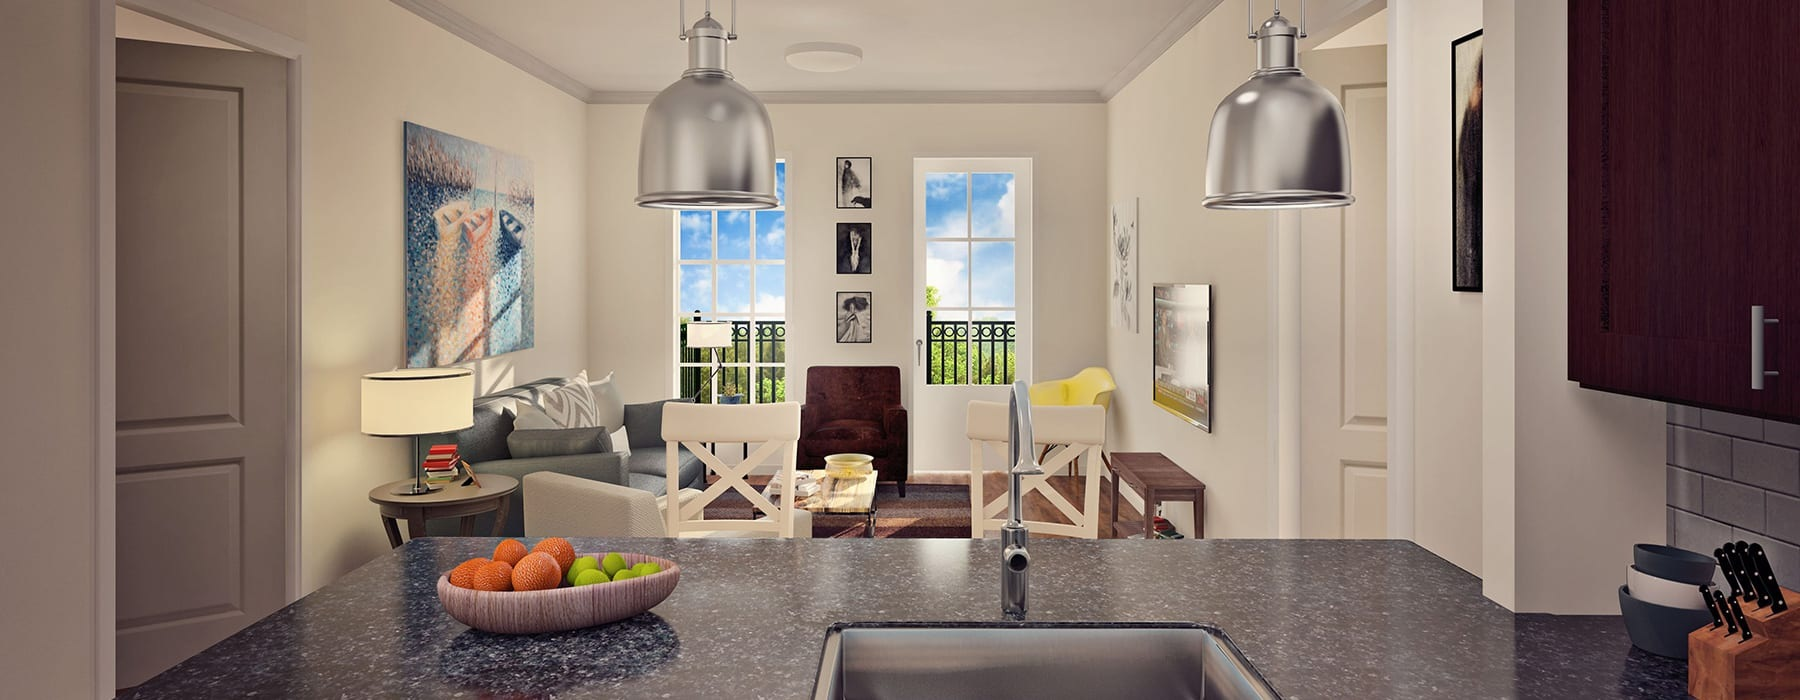 rendering of open kitchen that connects to well-lit living and dining areas